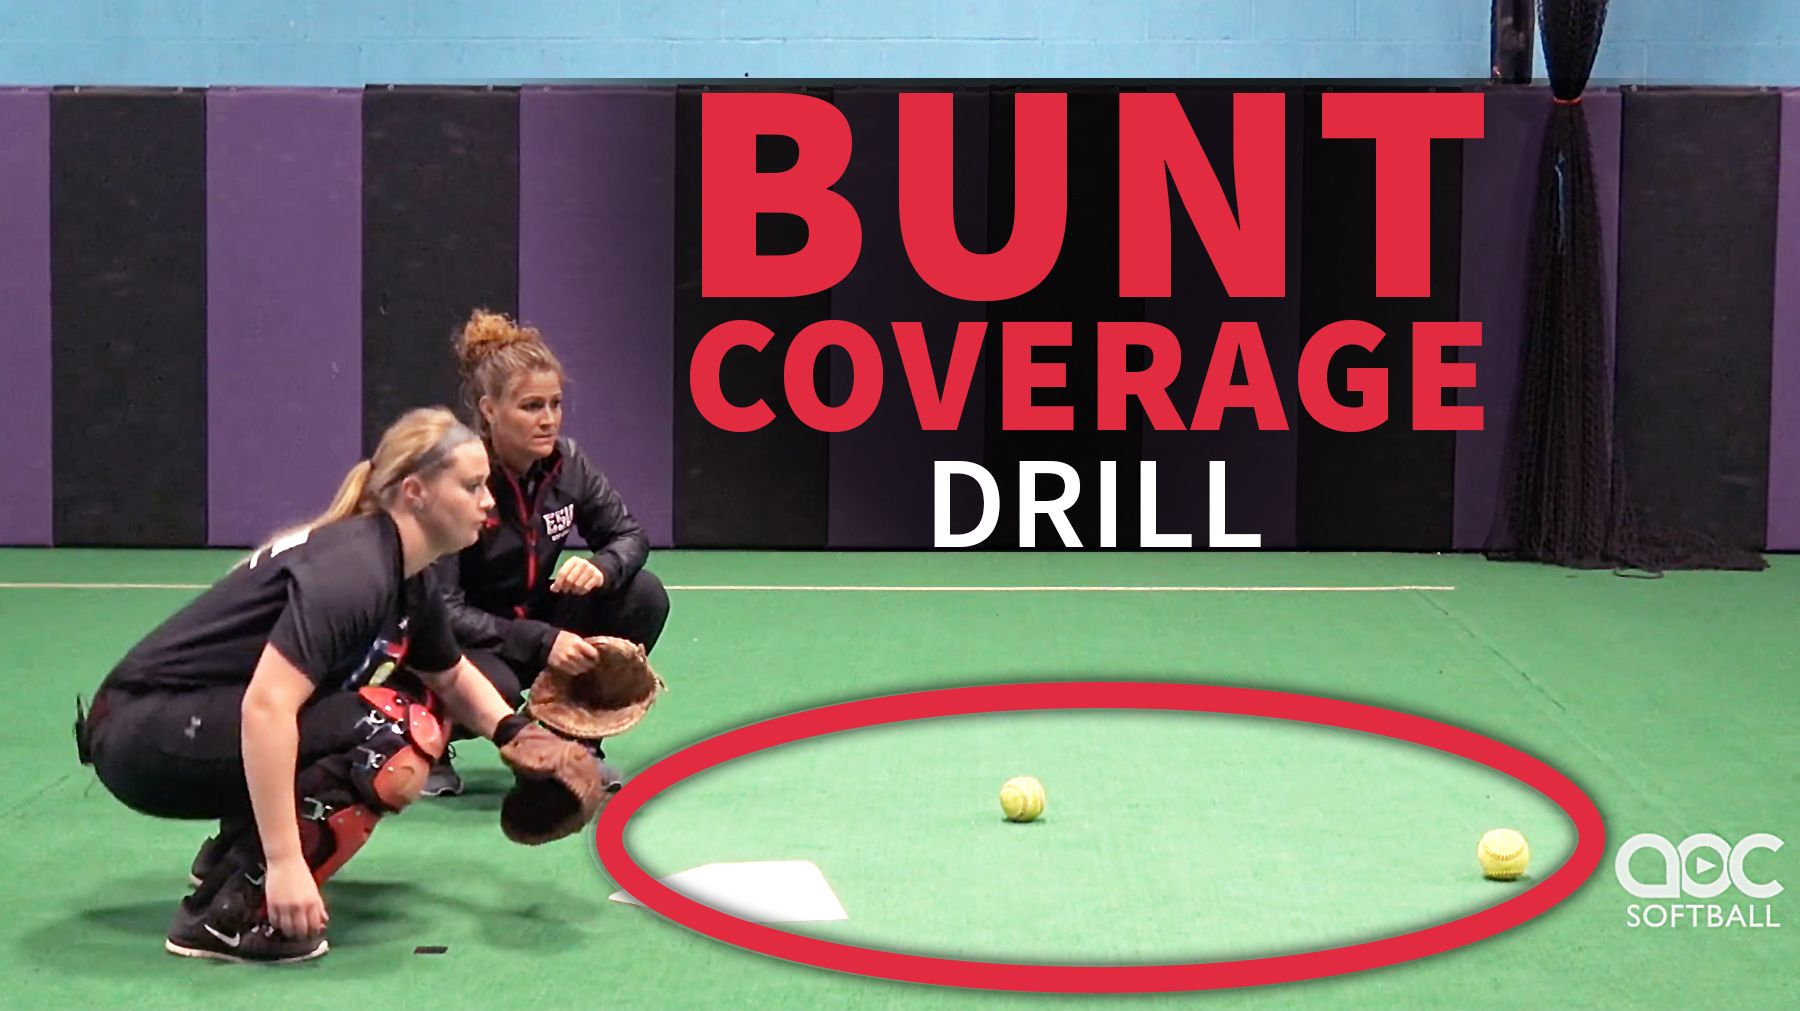 Catching: Bunt coverage drill